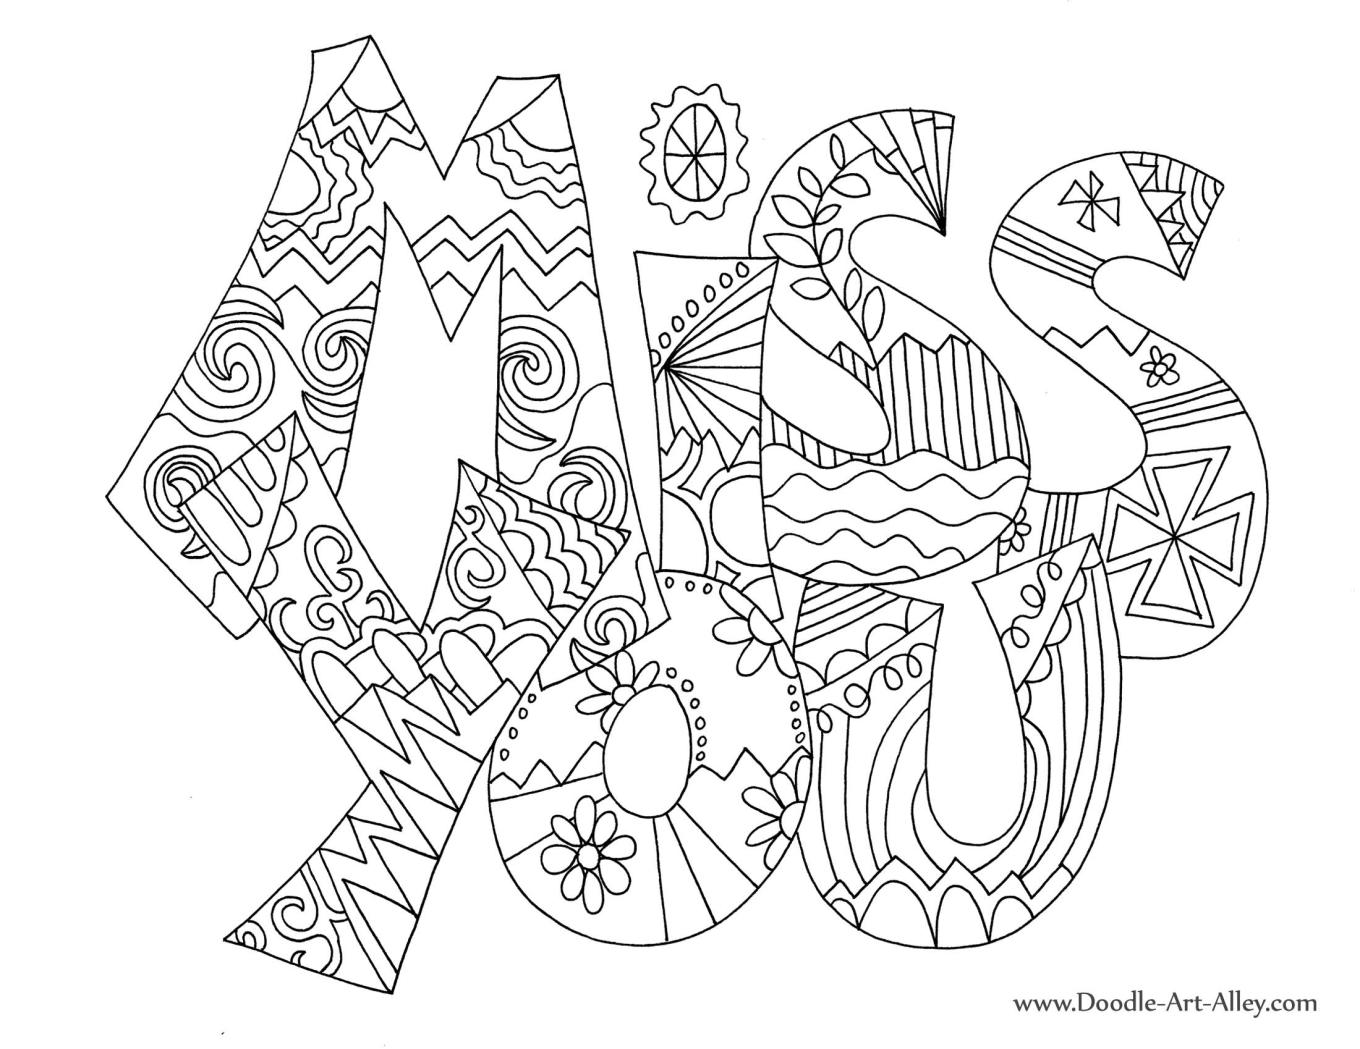 Doodle Art Alley All Quotes Coloring Pages Coloring Home Doodle Alley Coloring Pages